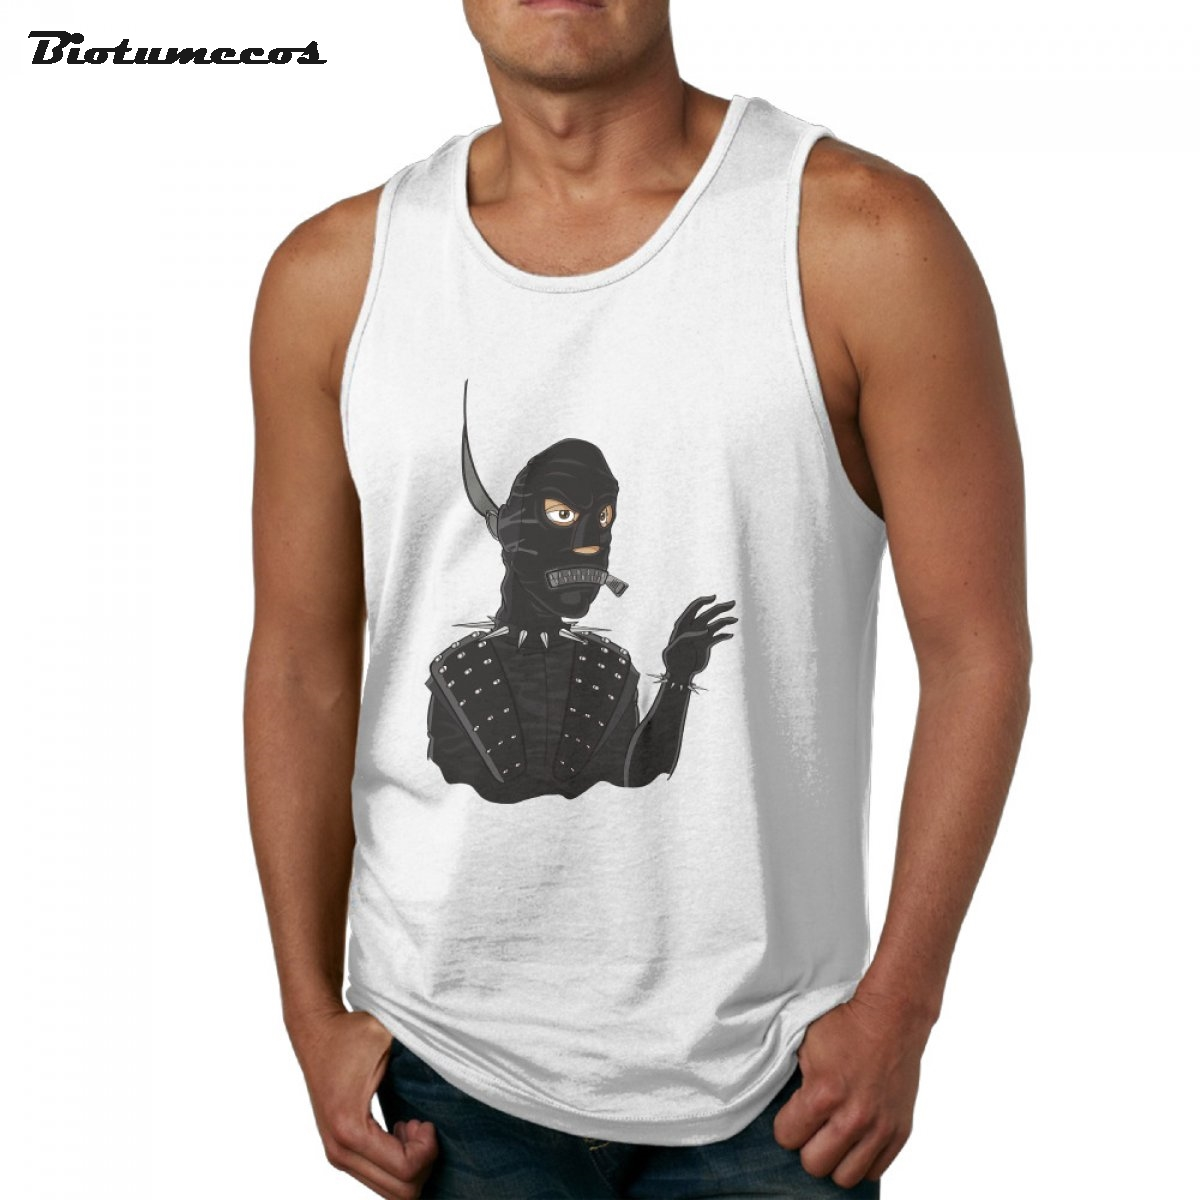 Men tank tops fashion 44